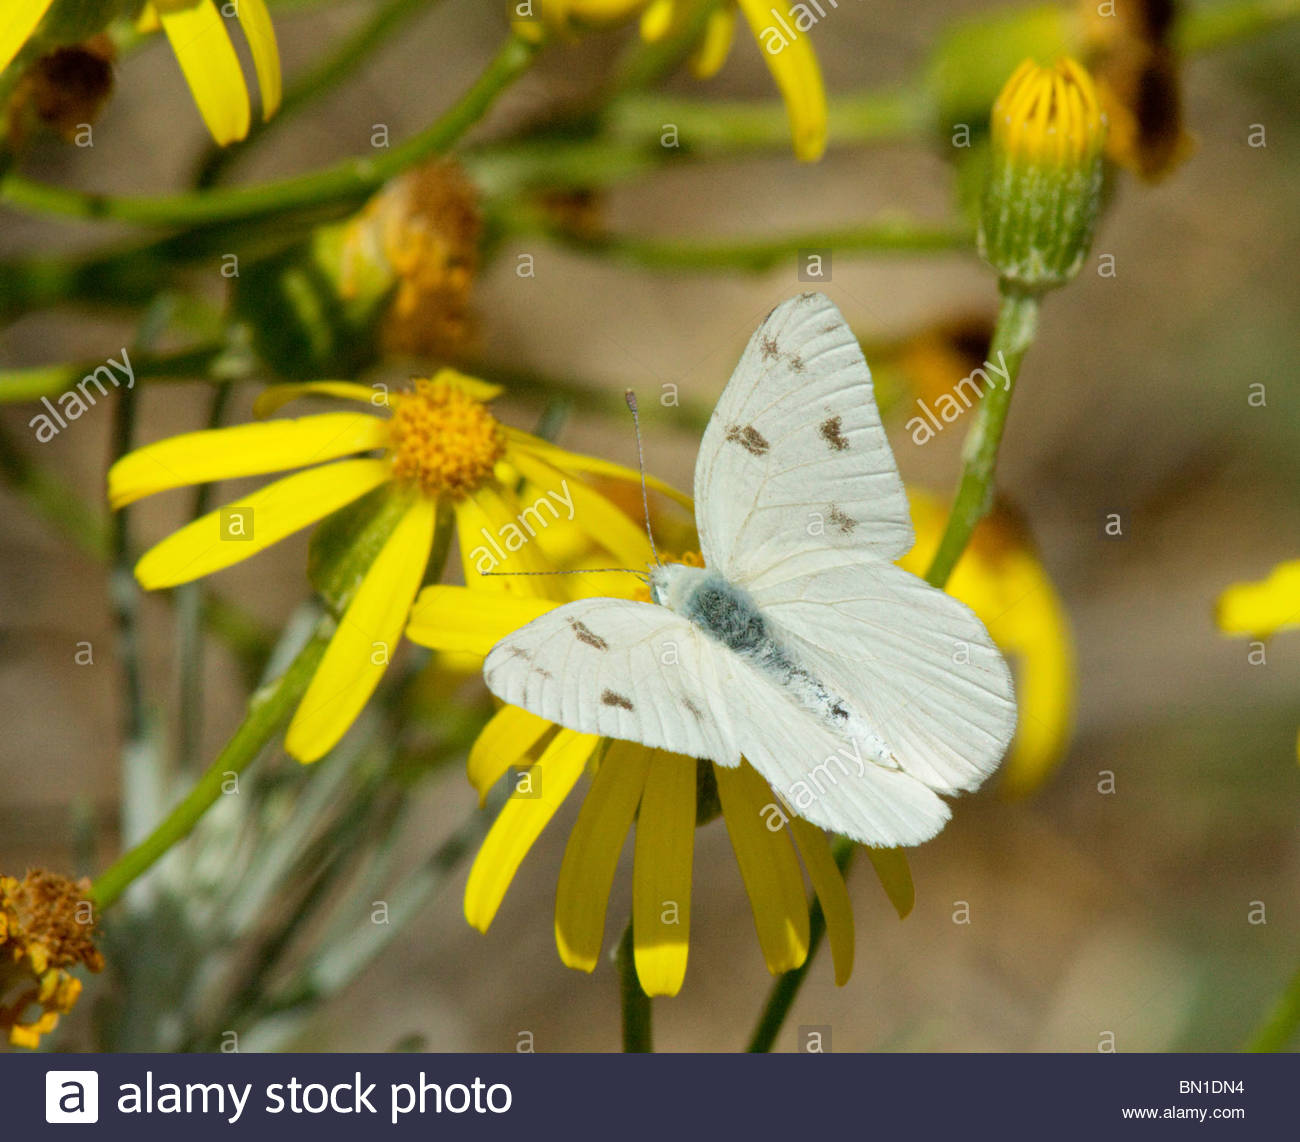 checkered-white-pontia-protodice-butterfly-new-mexico-BN1DN4.jpg